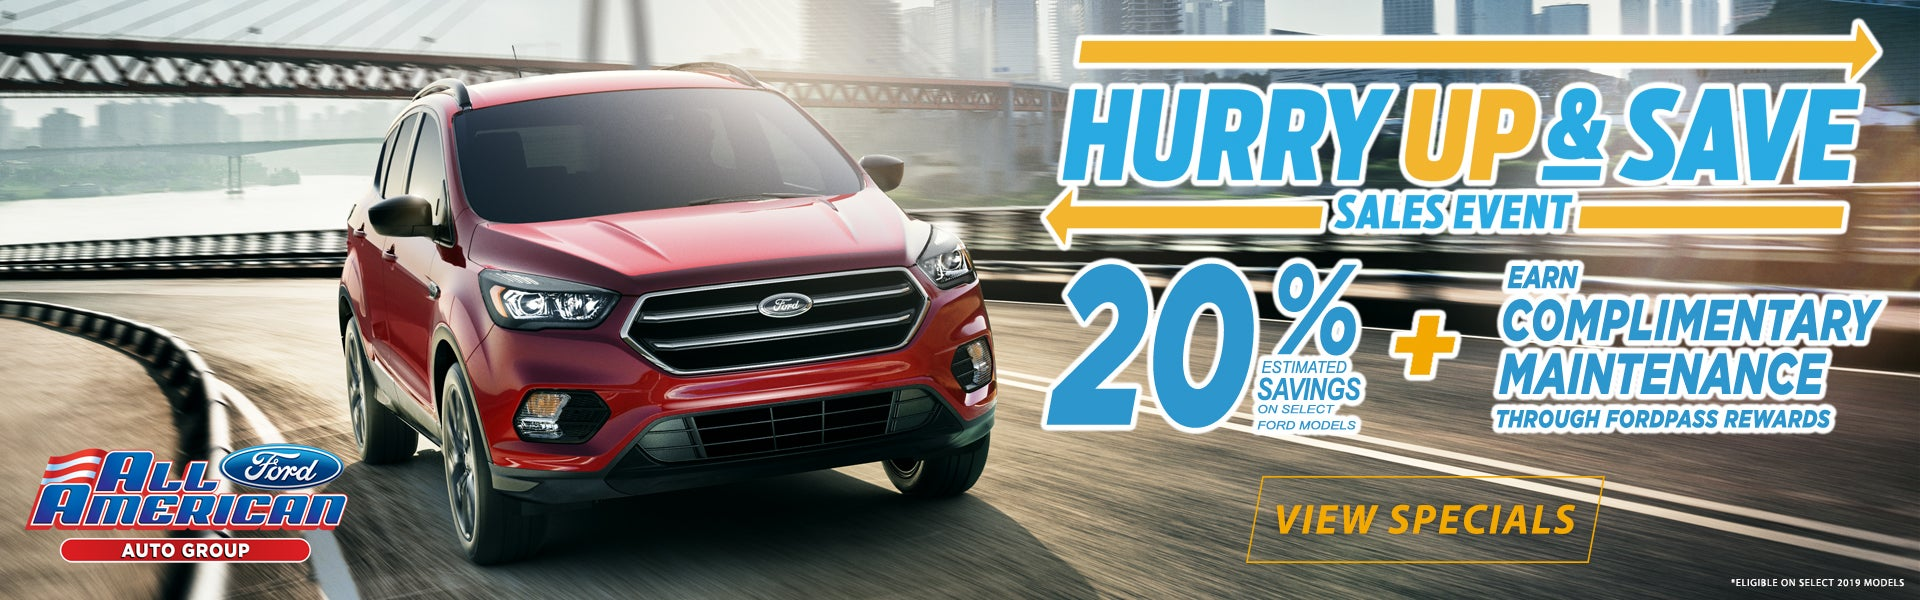 Ford Dealers Nj >> All American Ford Of Paramus Ford Dealership In Paramus Nj